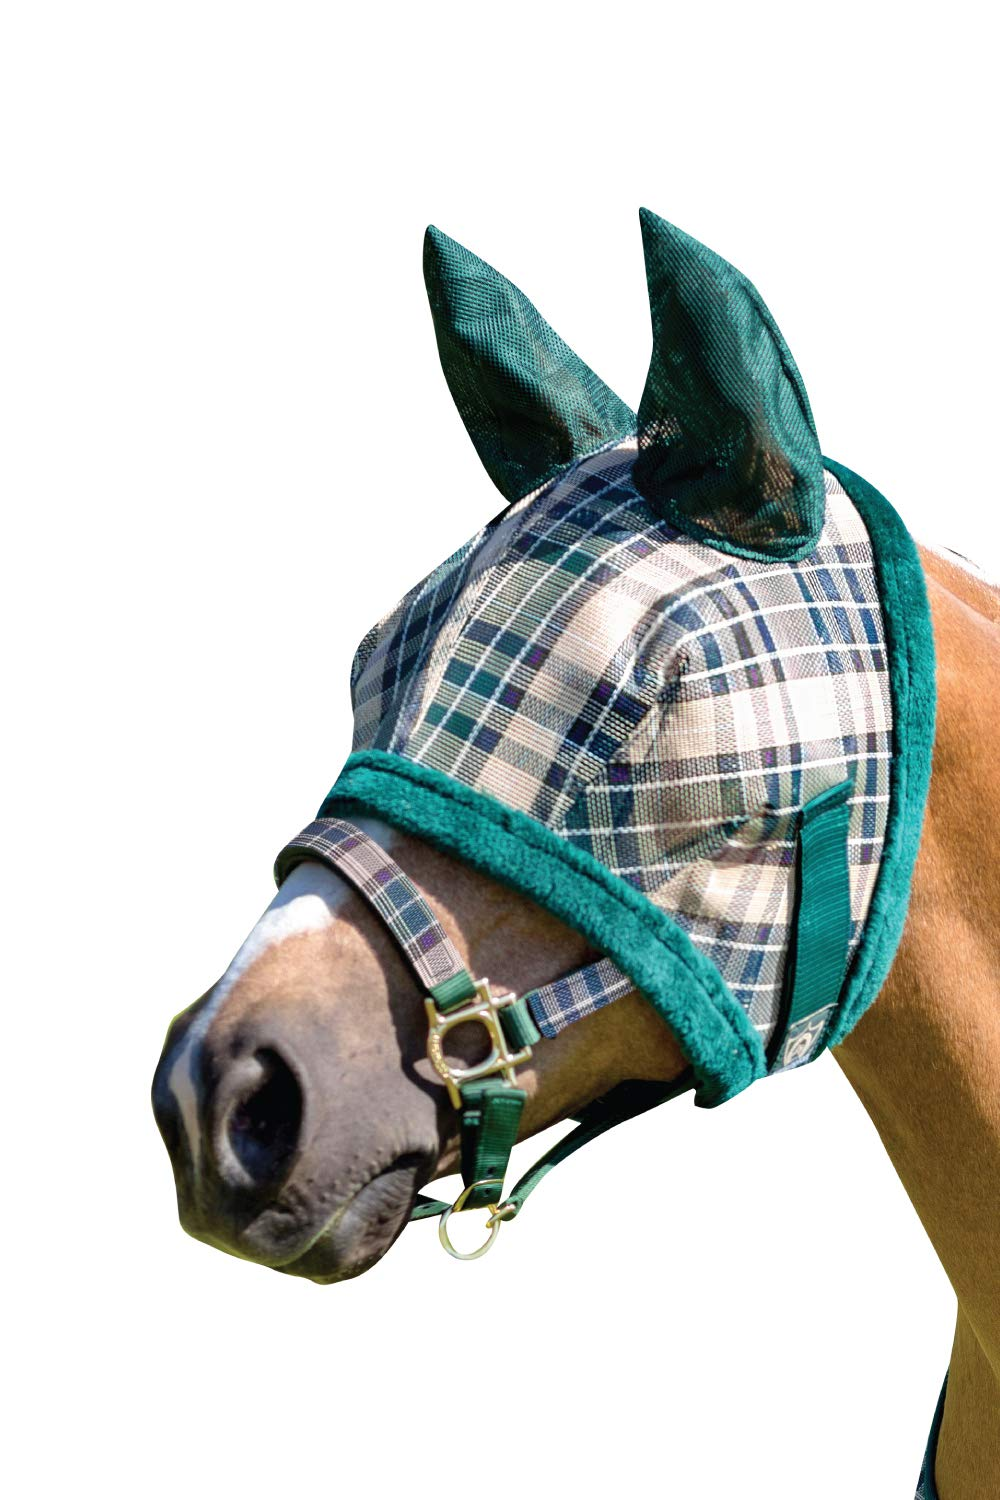 Kensington Fly Mask with Fleece Trim and Soft Ears - Allows Full Visibility with Maximum Protection -With Double Locking System - UV Protection (Large, Deluxe Hunter Plaid) by Kensington Protective Products